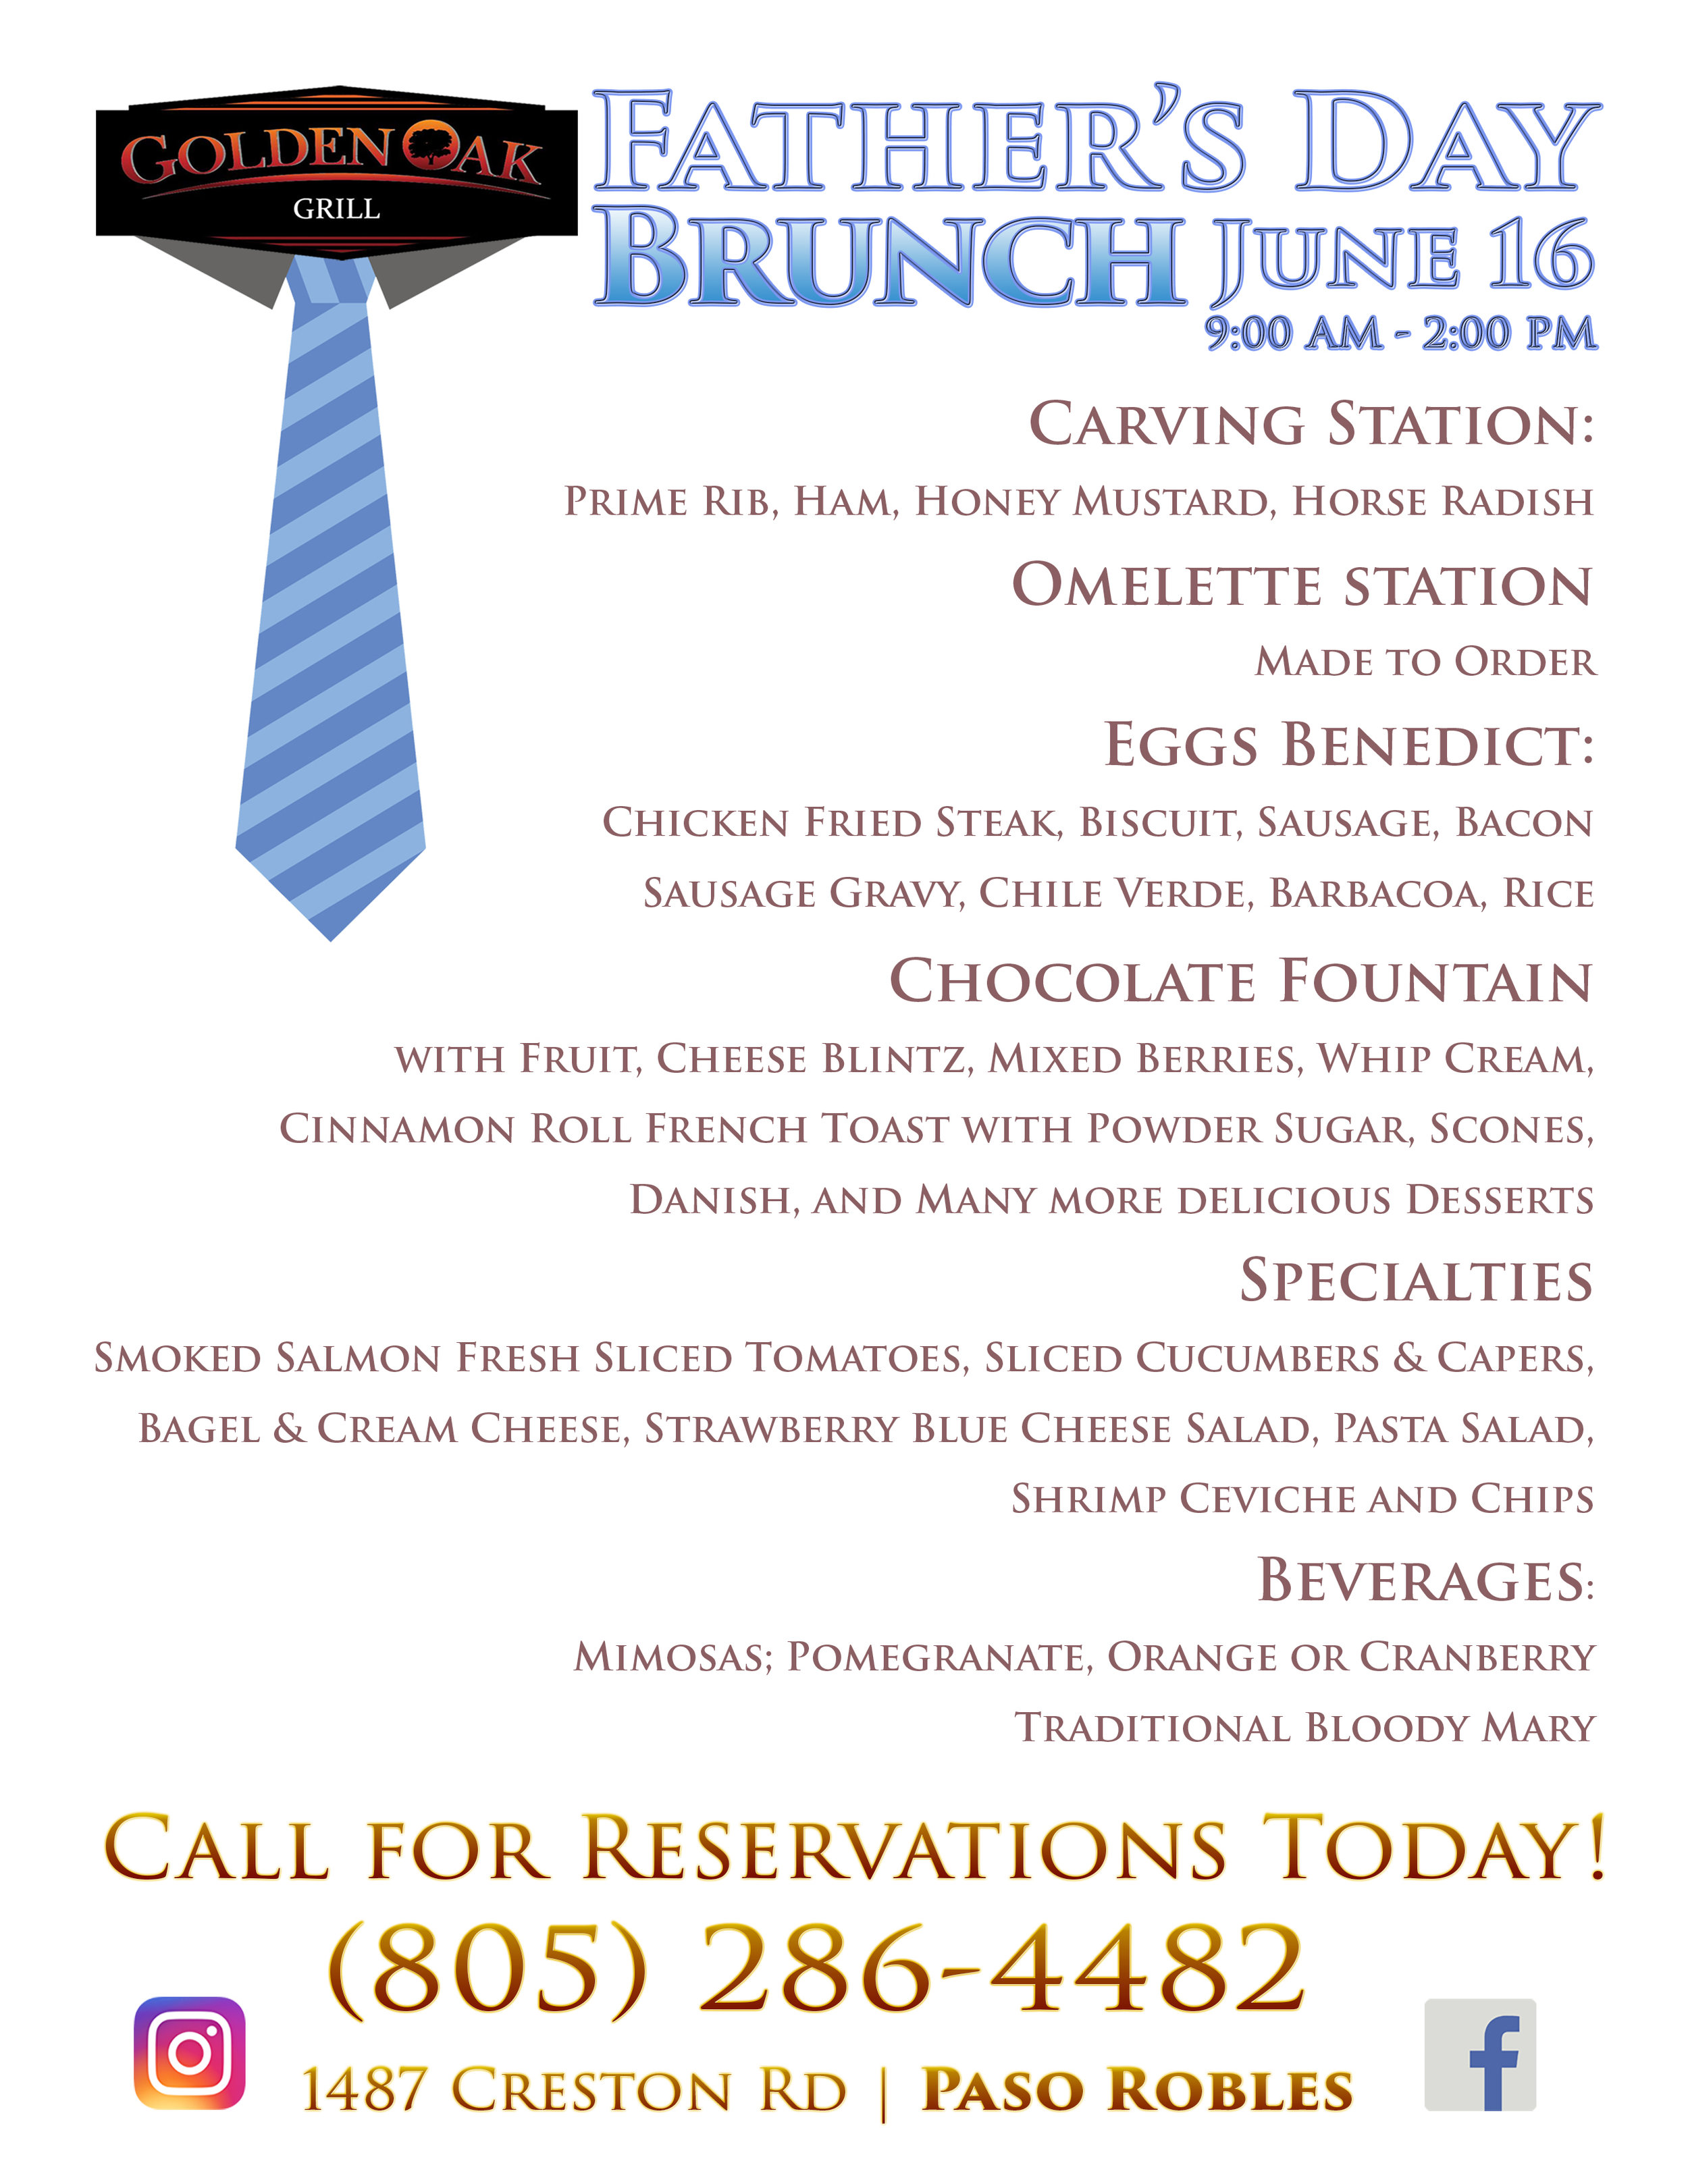 come to Golden Oak Grill and celebrate dad with a fantastic buffet brunch  we have something for the whole family, omelets made to order - treats - and bloody-mary specials